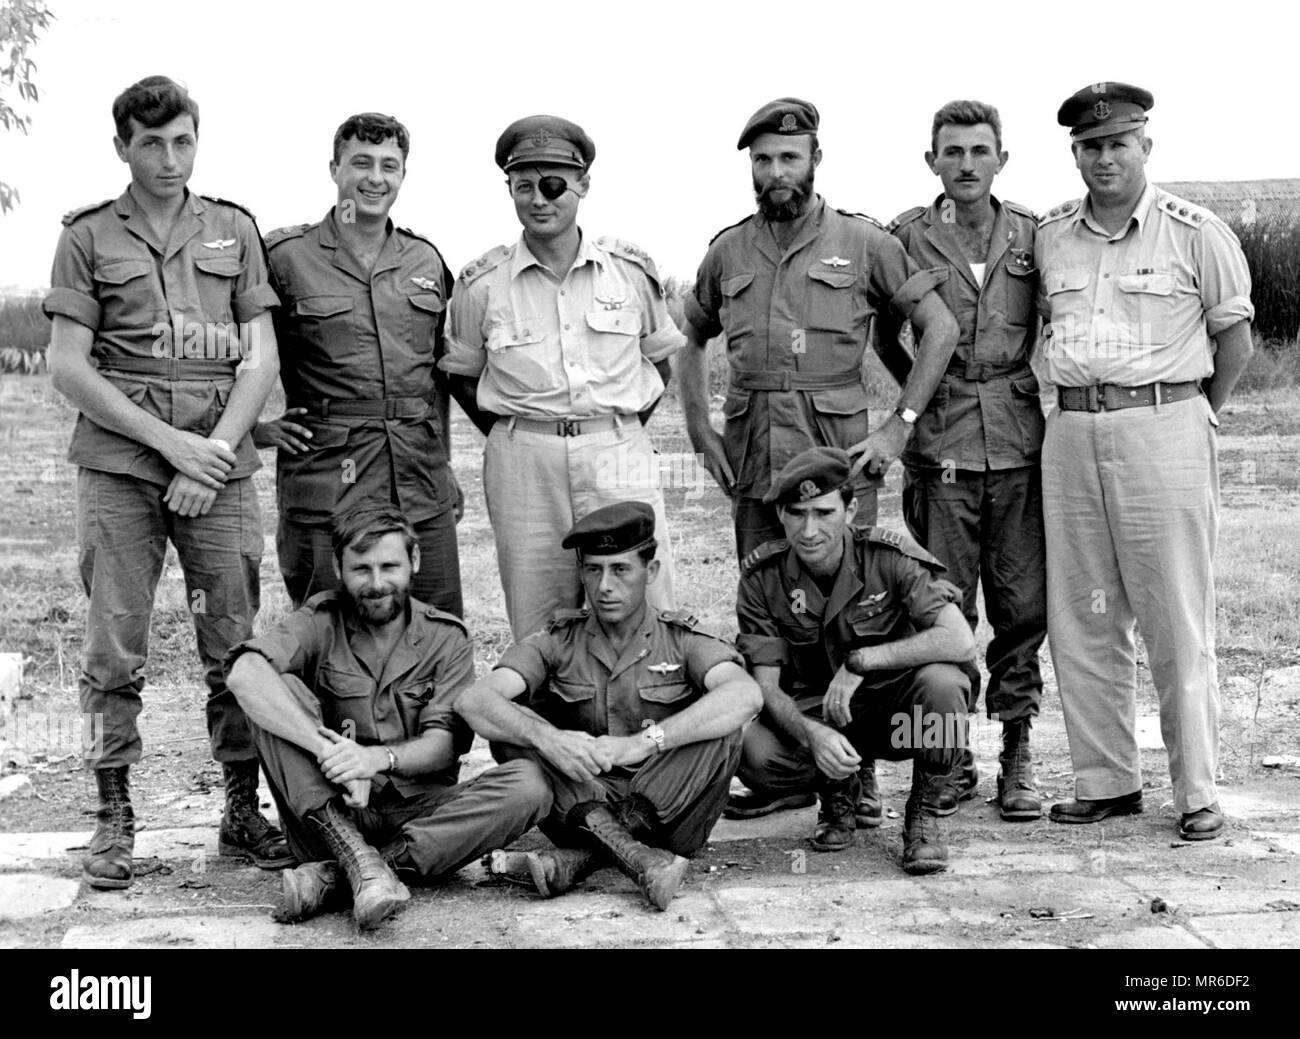 Operation Egged (the Kuntilla operation), was an Israeli military operation carried out on night of October 28–29, 1955 that targeted an Egyptian military post at Kuntilla, located in north-eastern Sinai. Israeli commanders pose after Operation Egged. Standing left to right: Lt. Meir Har-Zion, Maj. Ariel Sharon, Lt. Gen. Moshe Dayan, Capt. Danny Matt, Lt. Moshe Efron, Col. Asaf Simhoni; on ground, l to r: Capt. Aharon Davidi, Lt. Yaakov Yaakov, Capt. Rafael Eitan - Stock Image